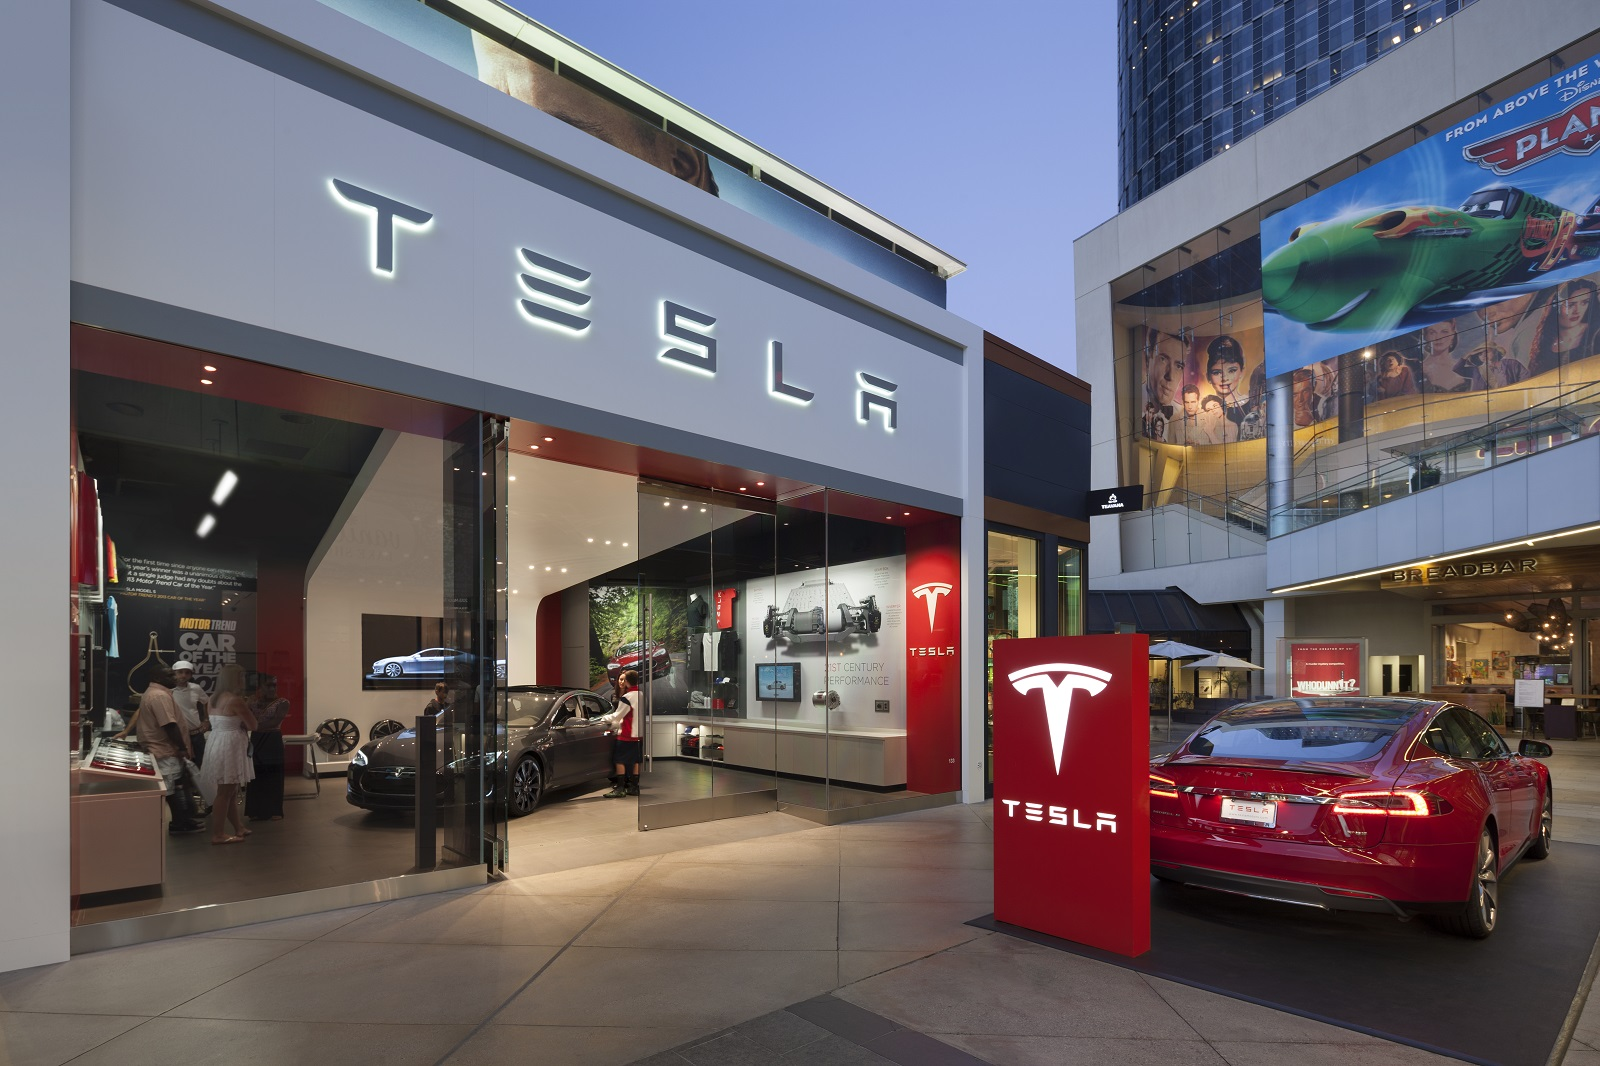 va may deny tesla a store license dealers say they want to sell teslas. Black Bedroom Furniture Sets. Home Design Ideas